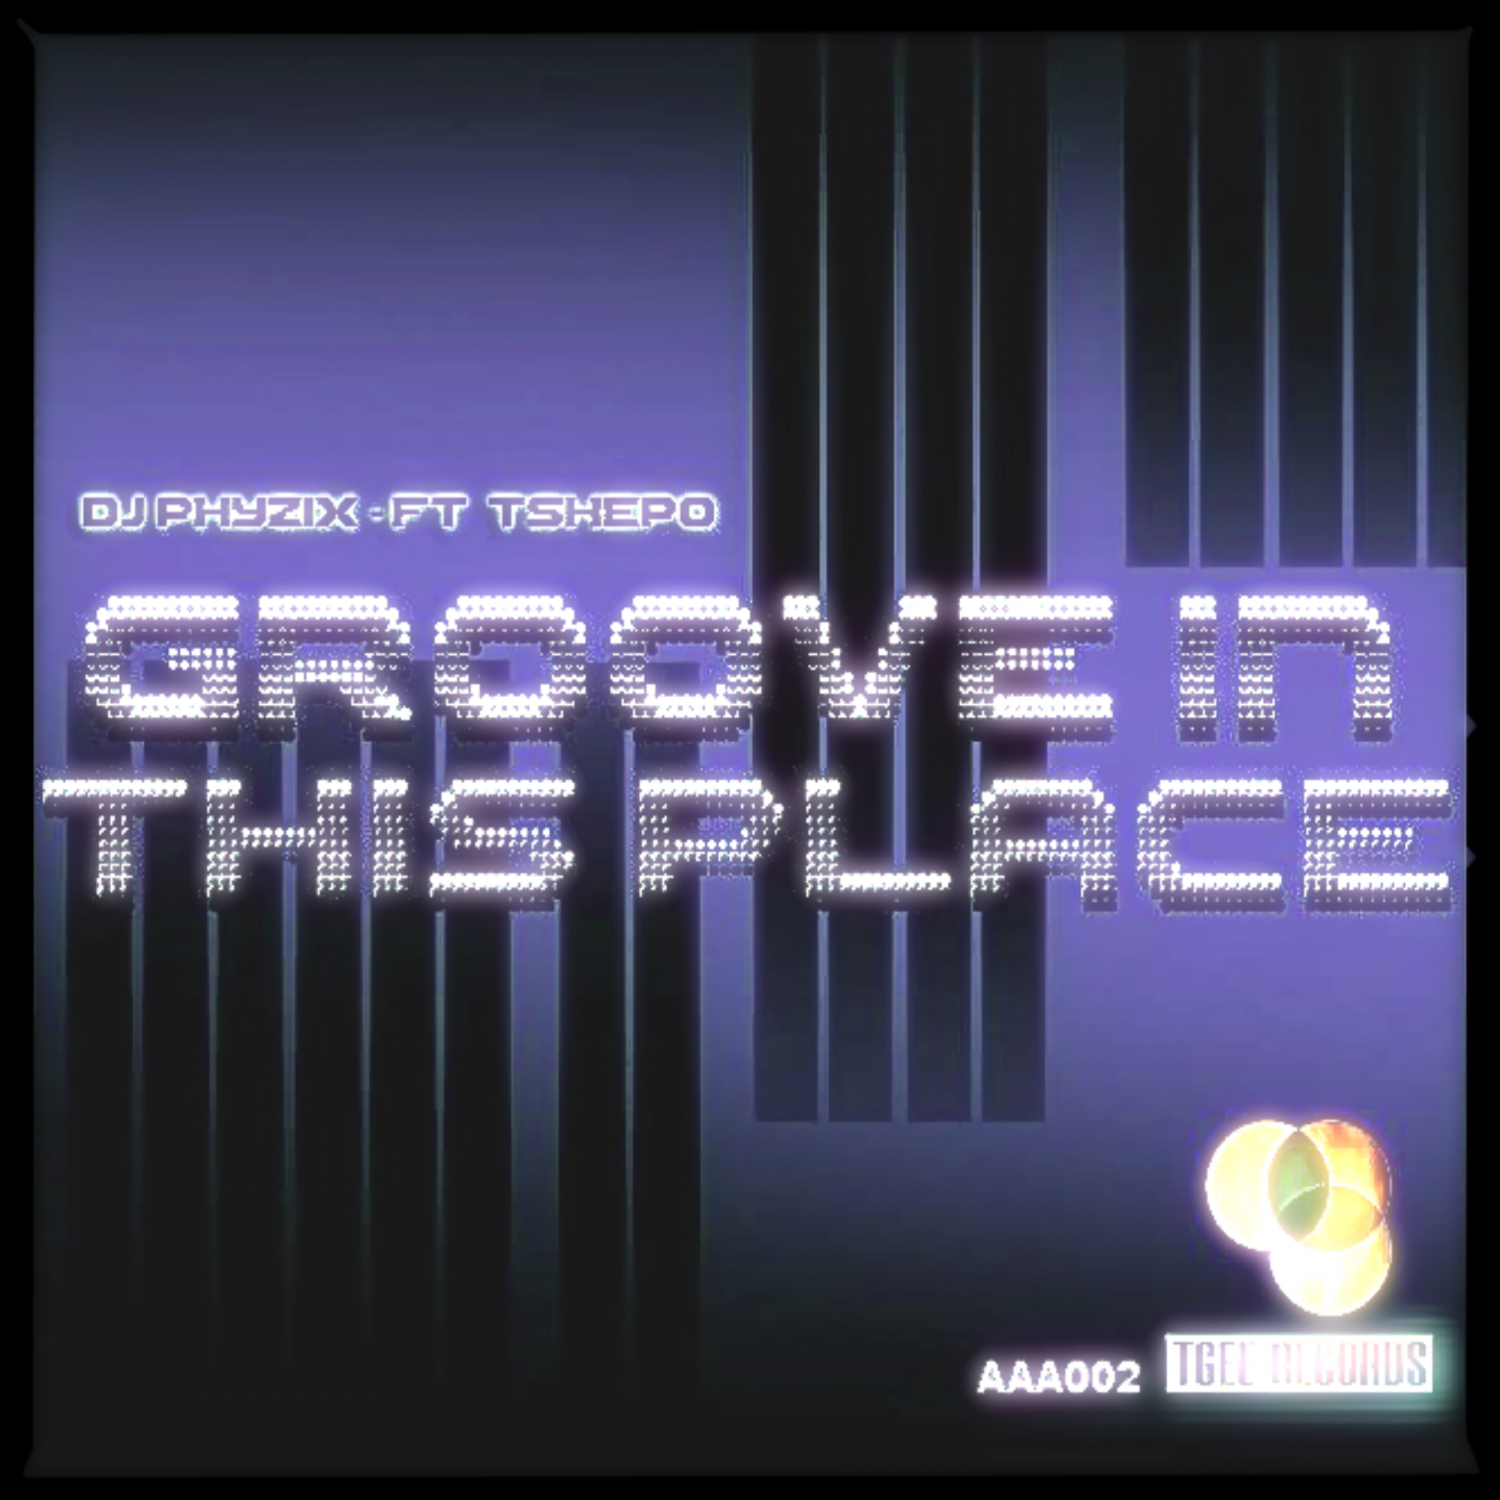 Dj Phyzix & Tshepo - Groove In This Place (feat. Tshepo) (Original Mix)